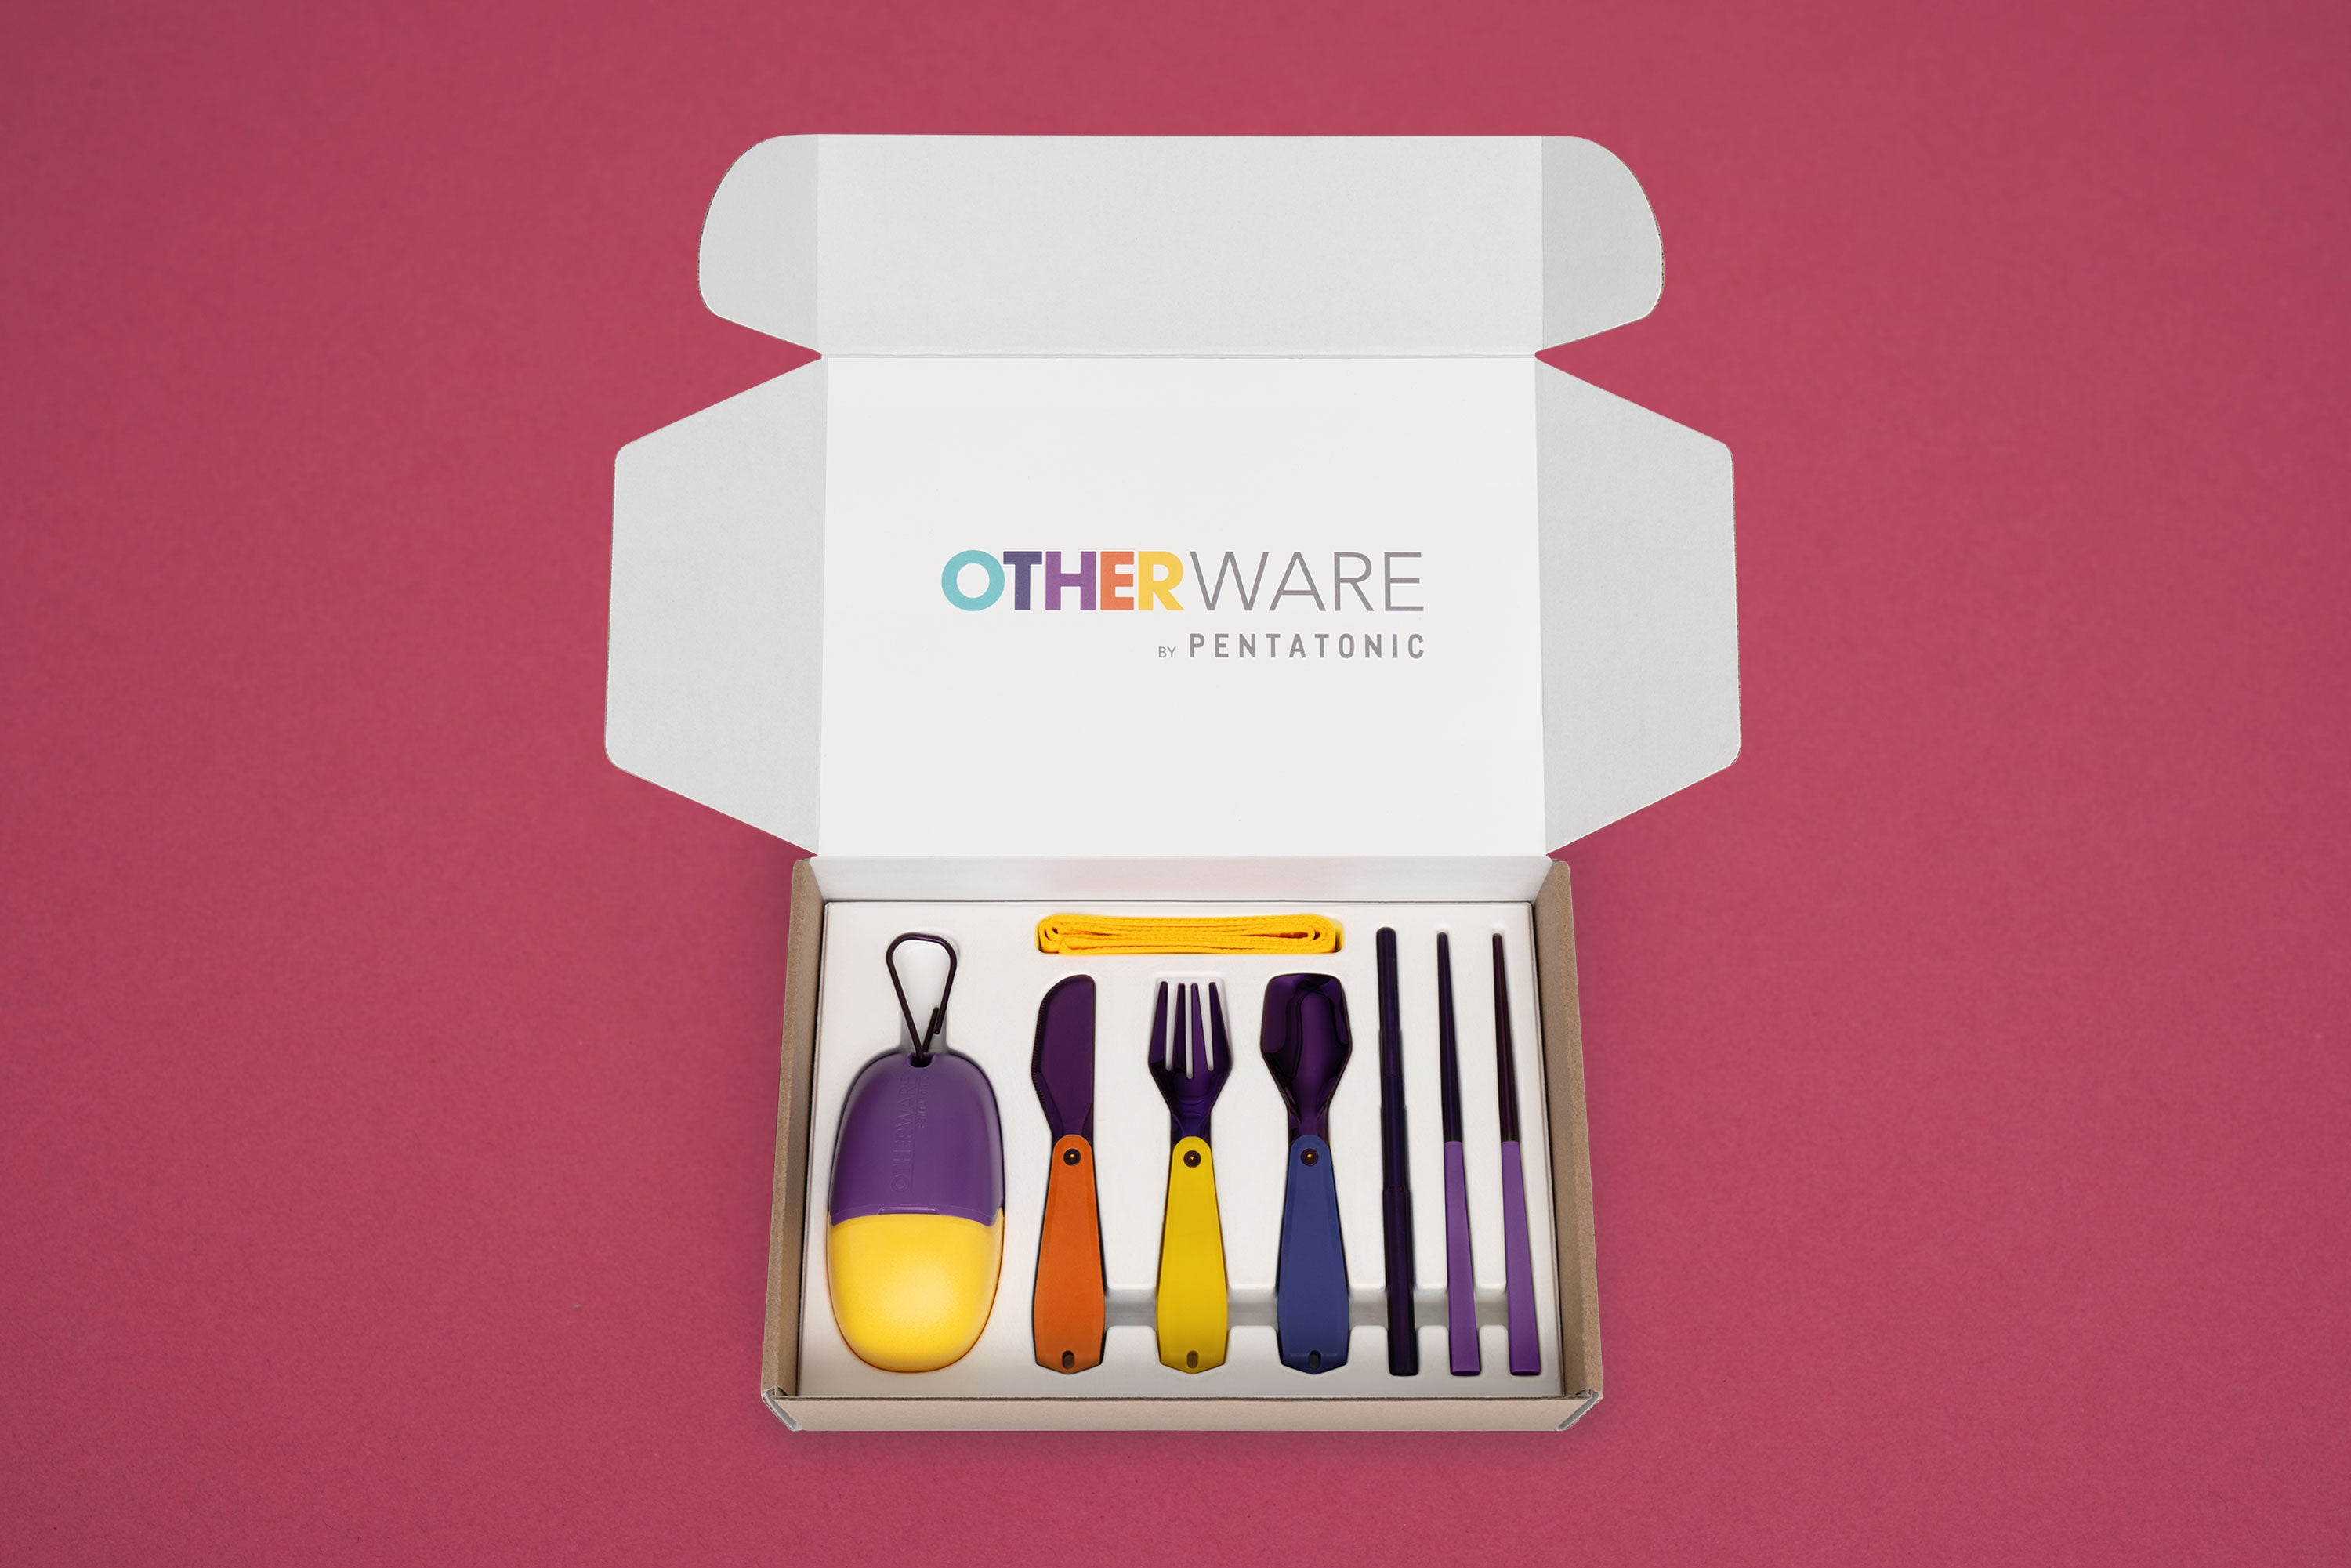 otherware pebble cutlery set packaging giftset